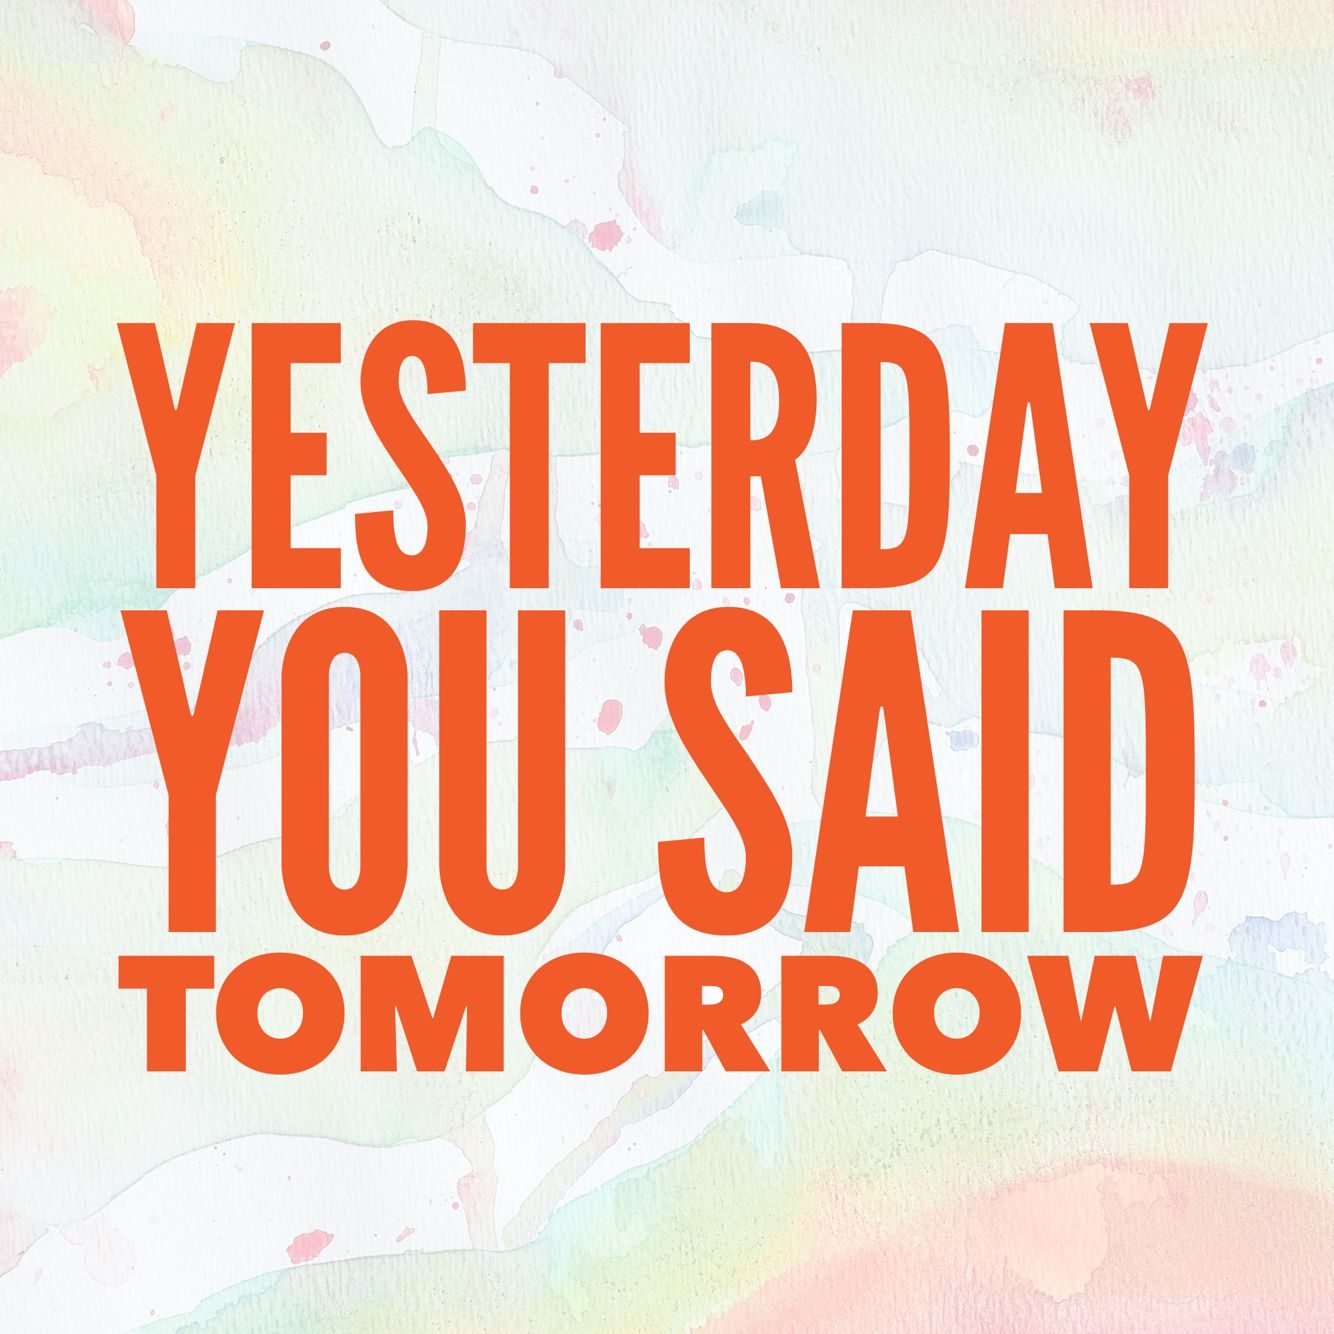 Yesterday You Said Tomorrow Cool Fun Inspirational Quotes